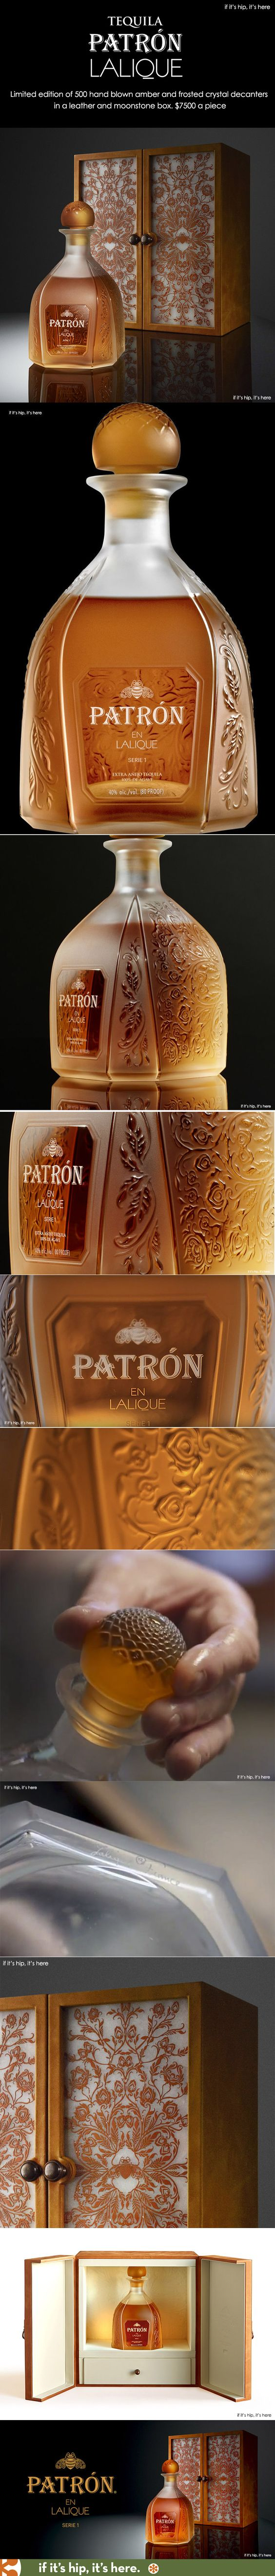 Tequila brand Patrón and Lalique, the historical French crystal maker, have combined their talents for the first time to collaborate on this one-of-a-kind elegant hand blown crystal decanter holding the rarest, oldest blend of Patrón tequila. Packaged in a leather display case with gemstone details, there are only 500 units available globally, priced at $7500 a piece.